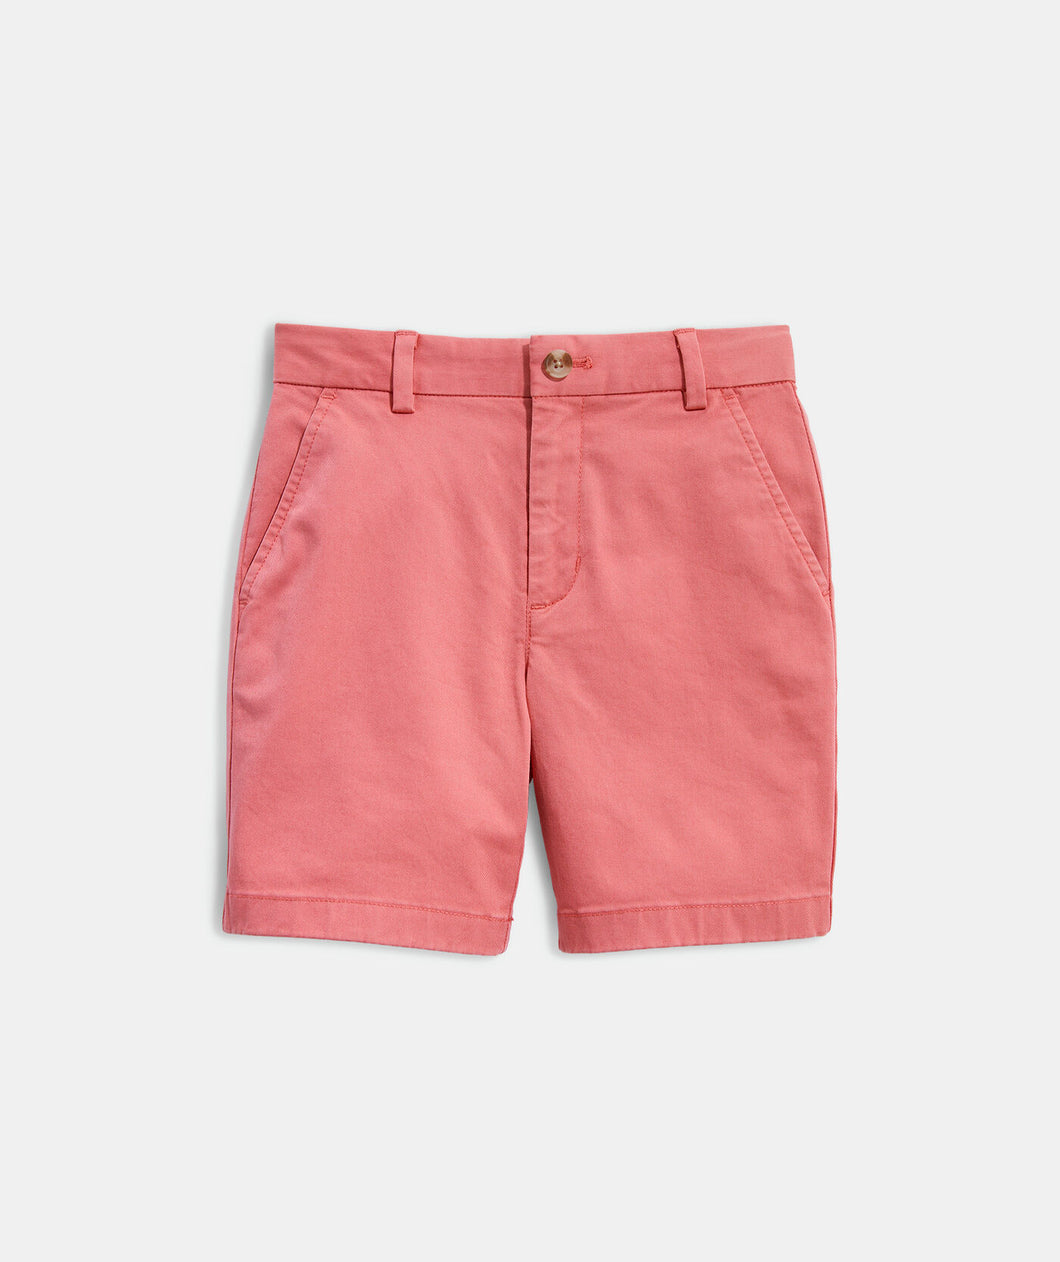 Vineyard Vines - Boys' Stretch Breaker Shorts